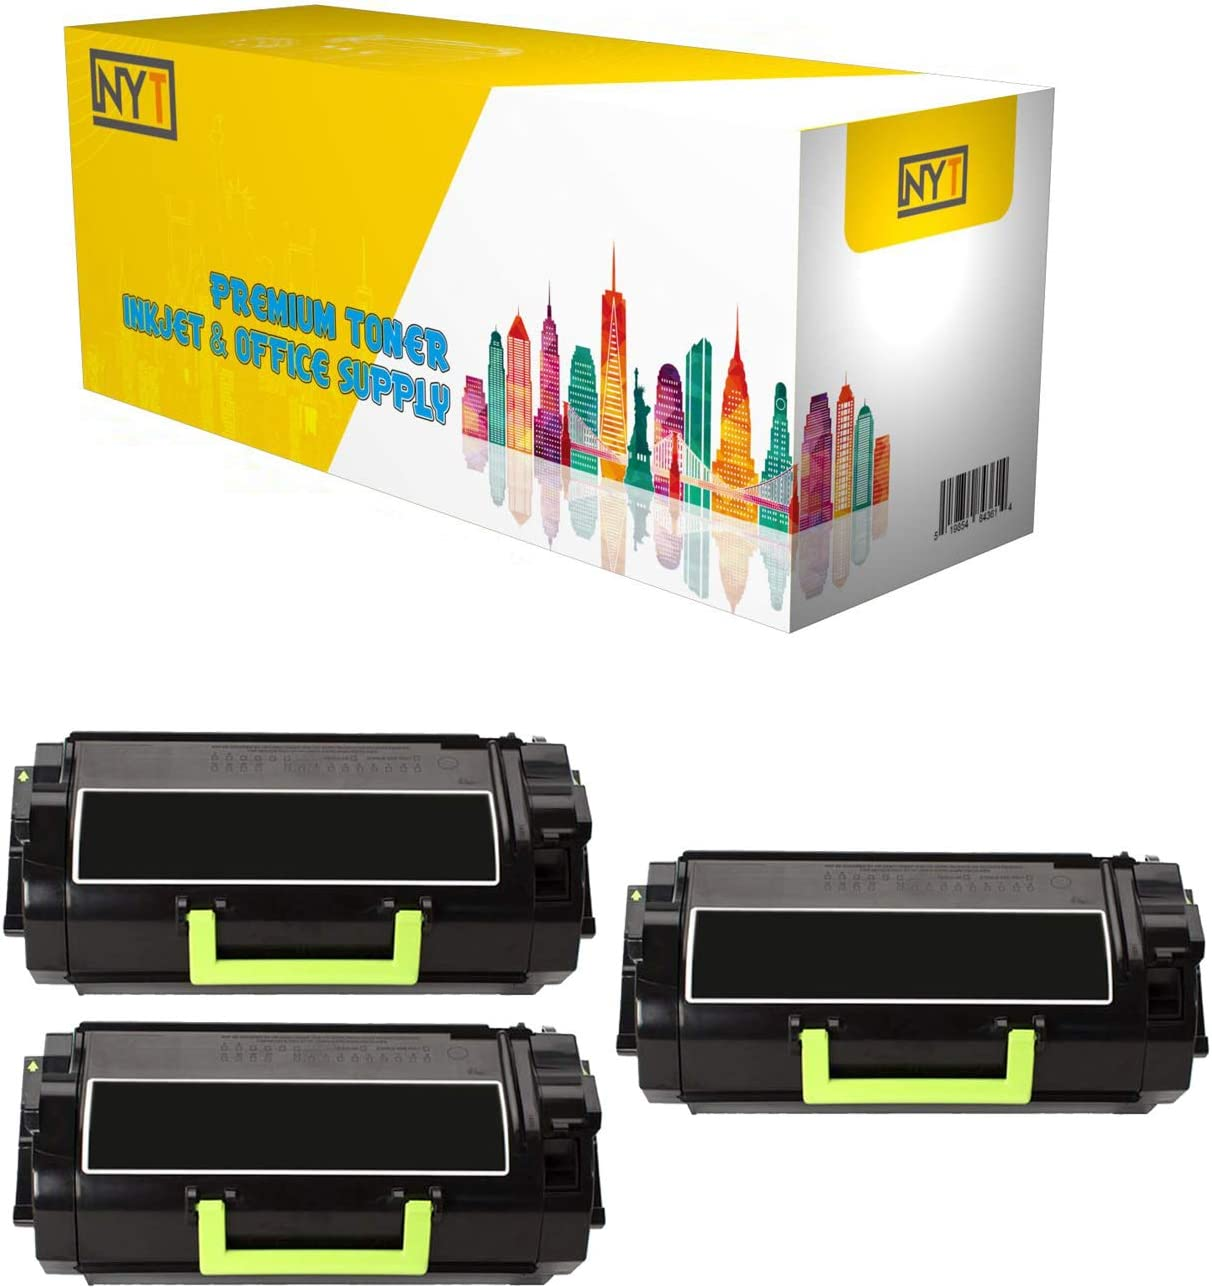 MU810 for Lexmark MX-710 711 810 811 812 Made in USA. Black, 3-Pack NYT Remanufactured Toner Cartridge Replacement for 620 620G 621 62D000G 62D00A0 62D1000